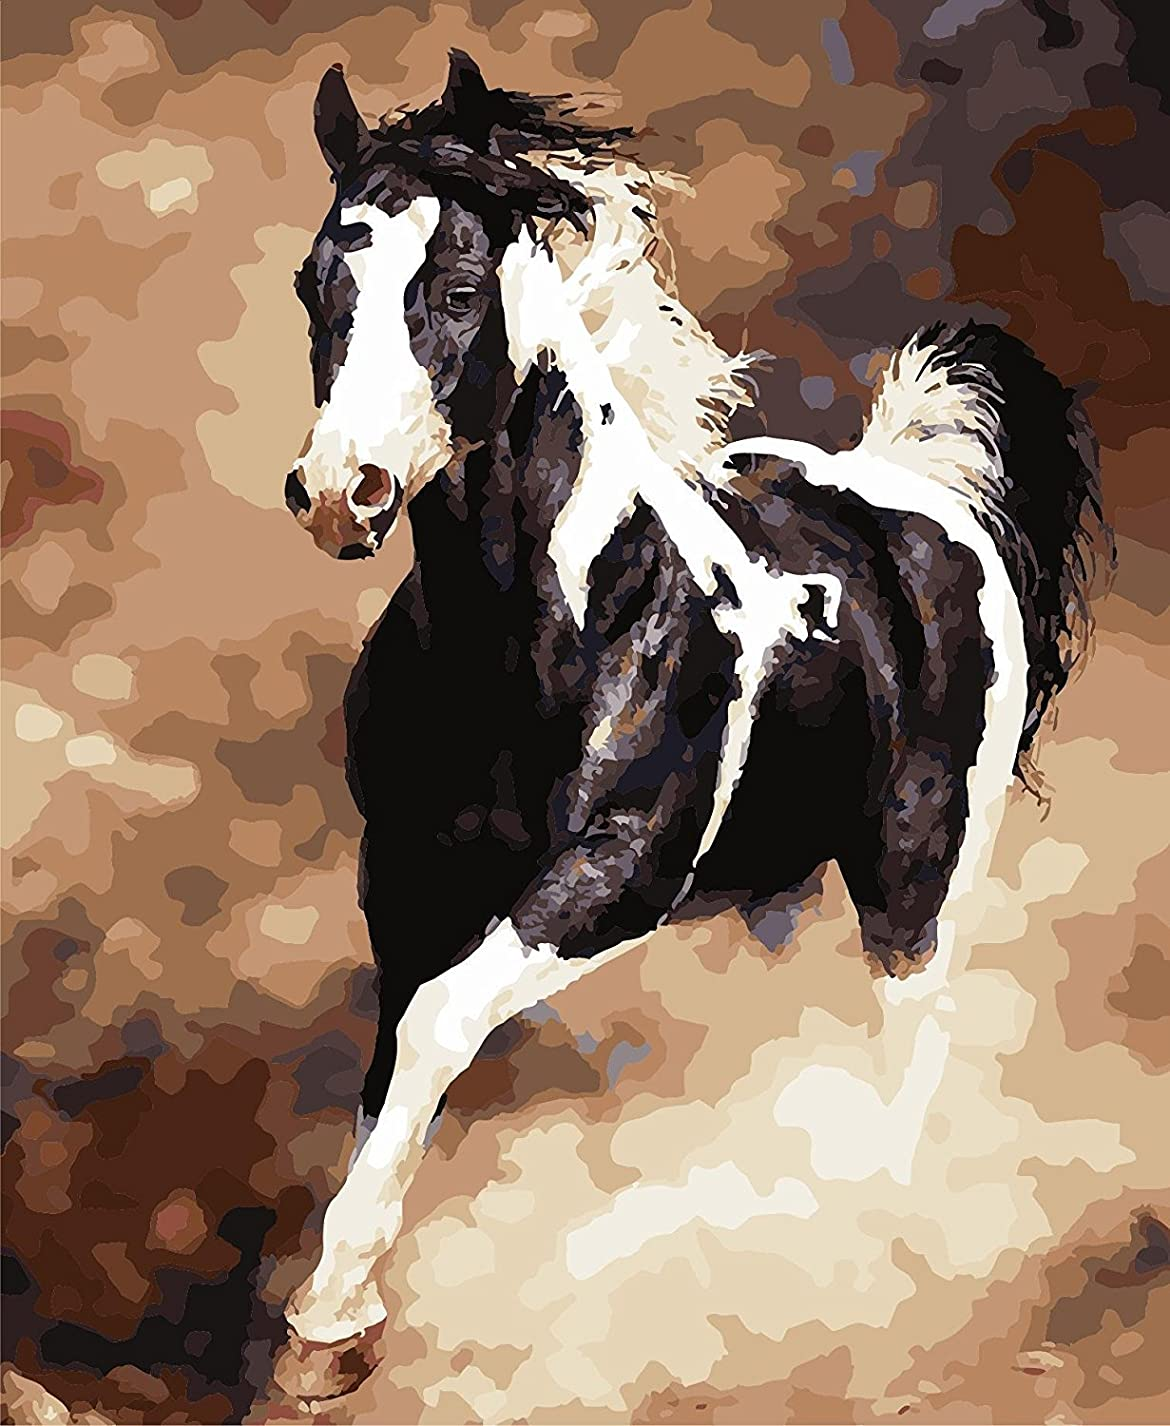 LB DIY Oil Painting for Adults Kids Paint By Number Kit Digital Oil Painting Horse 16X20 Inches hwq291511829714